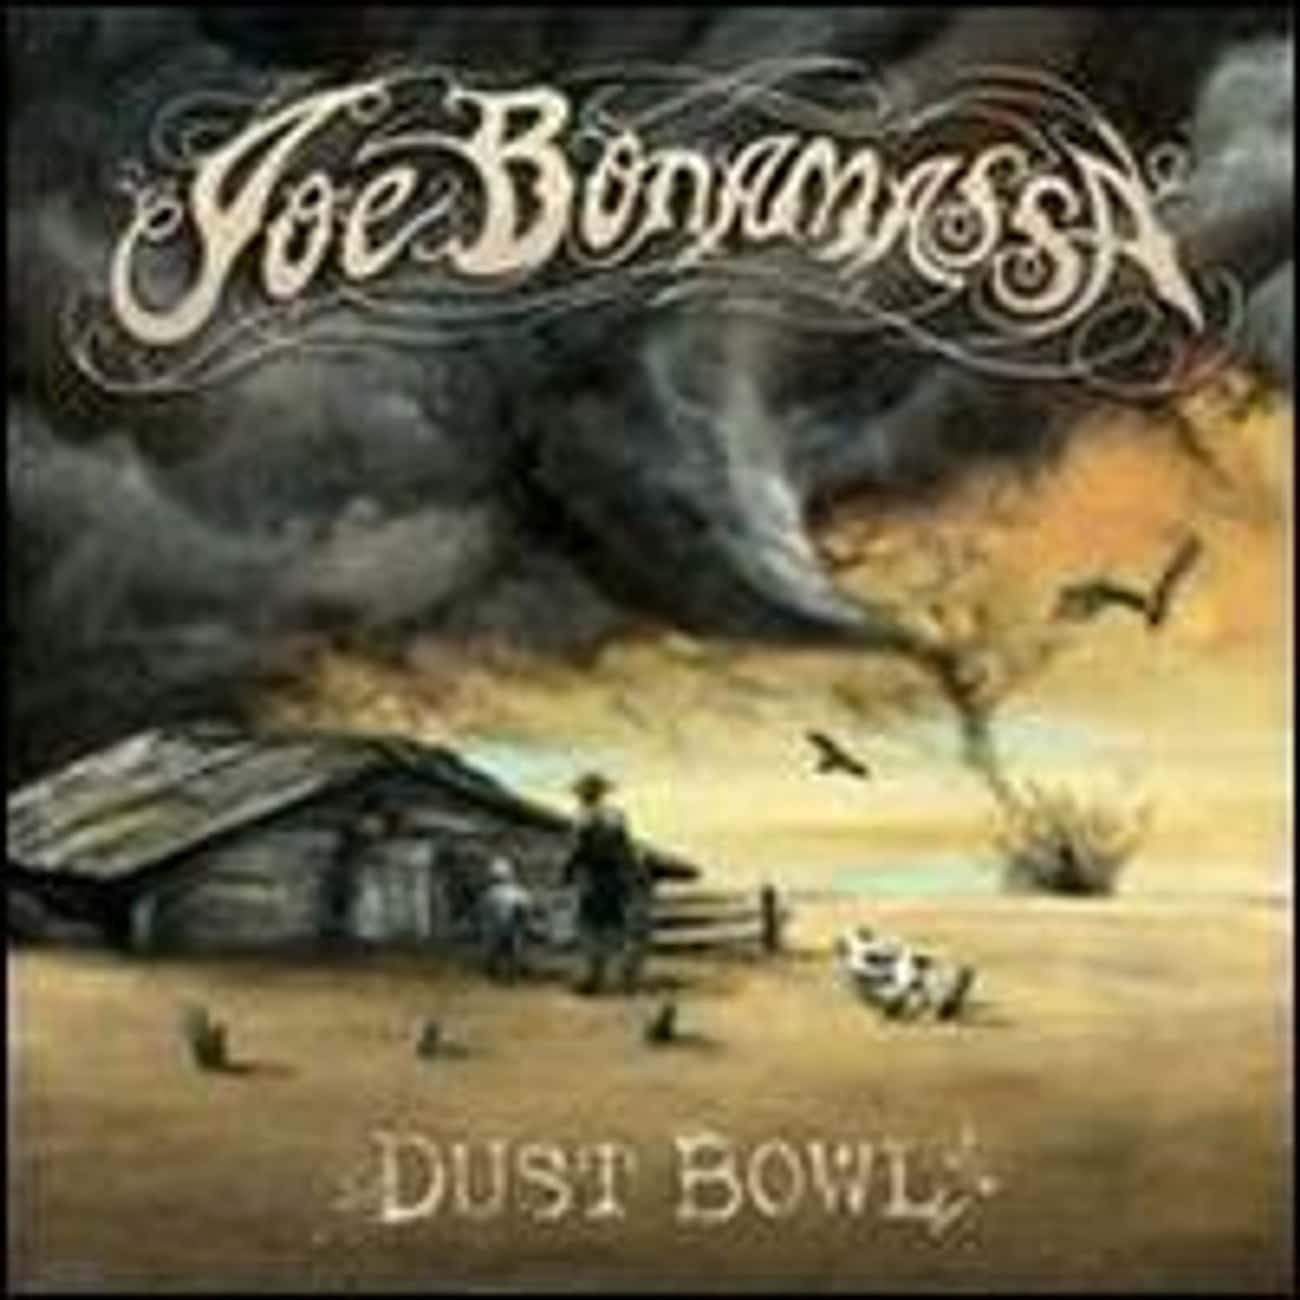 Dust Bowl is listed (or ranked) 2 on the list The Best Joe Bonamassa Albums of All Time